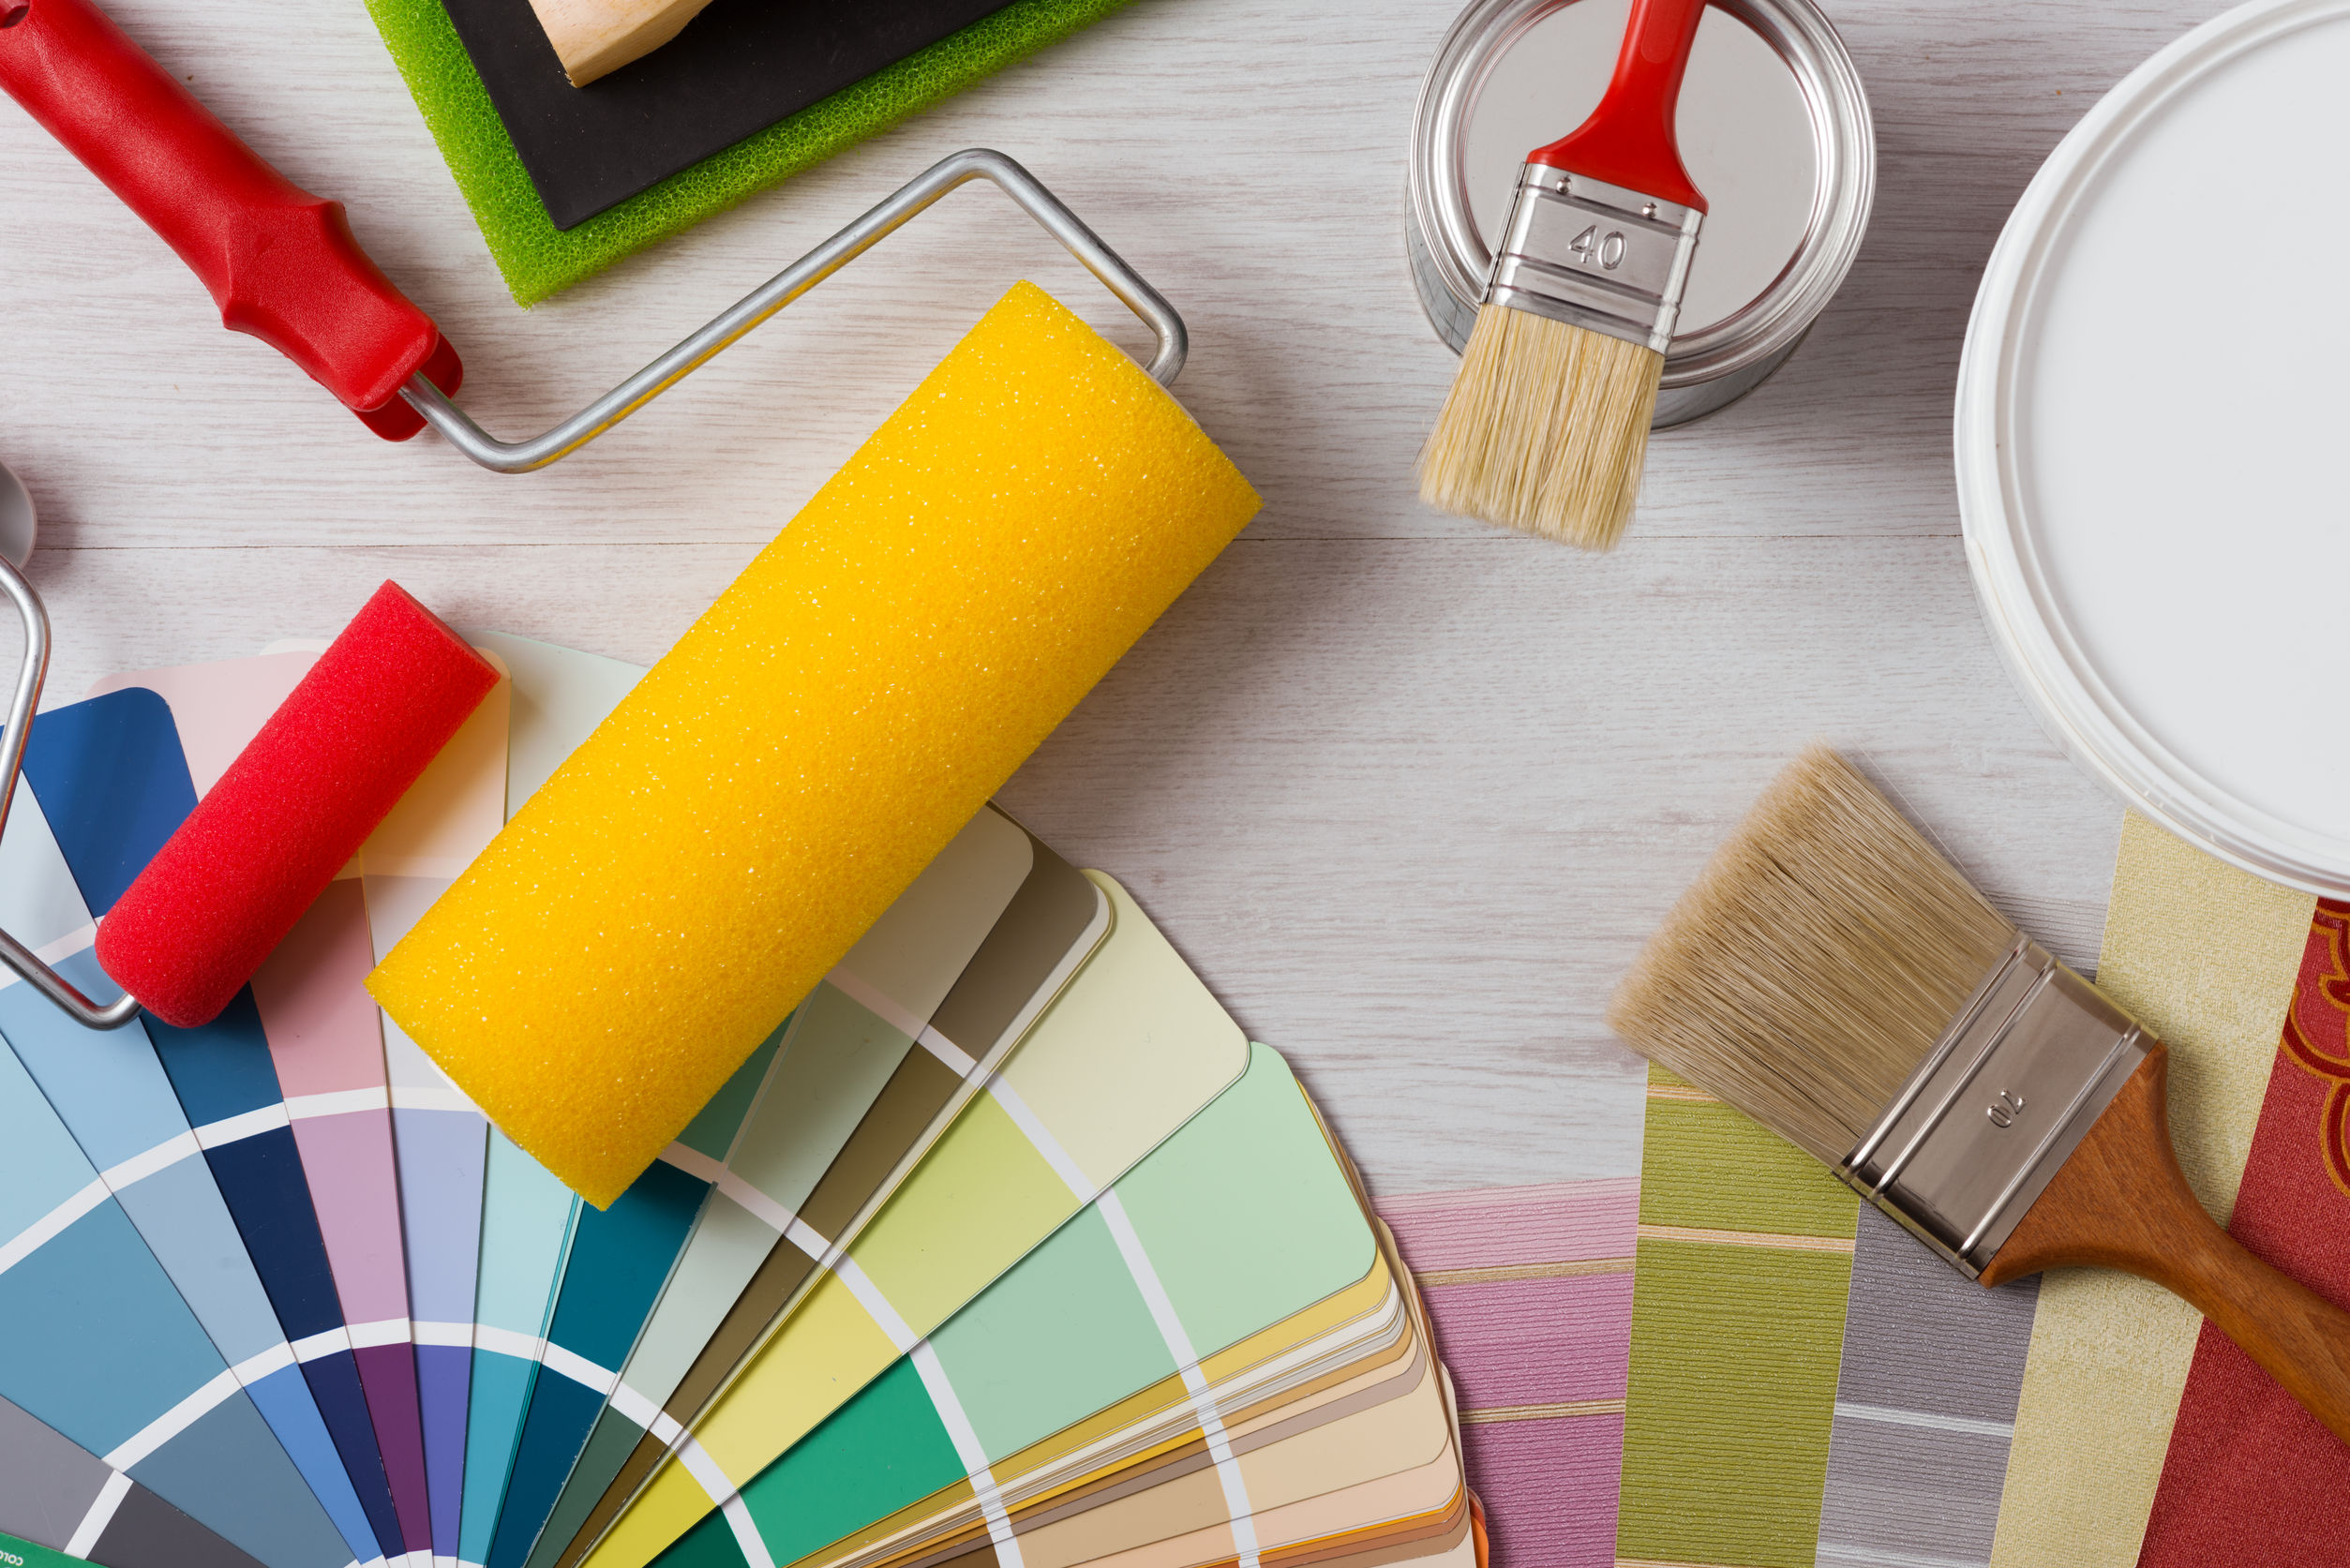 residential painting| painting services